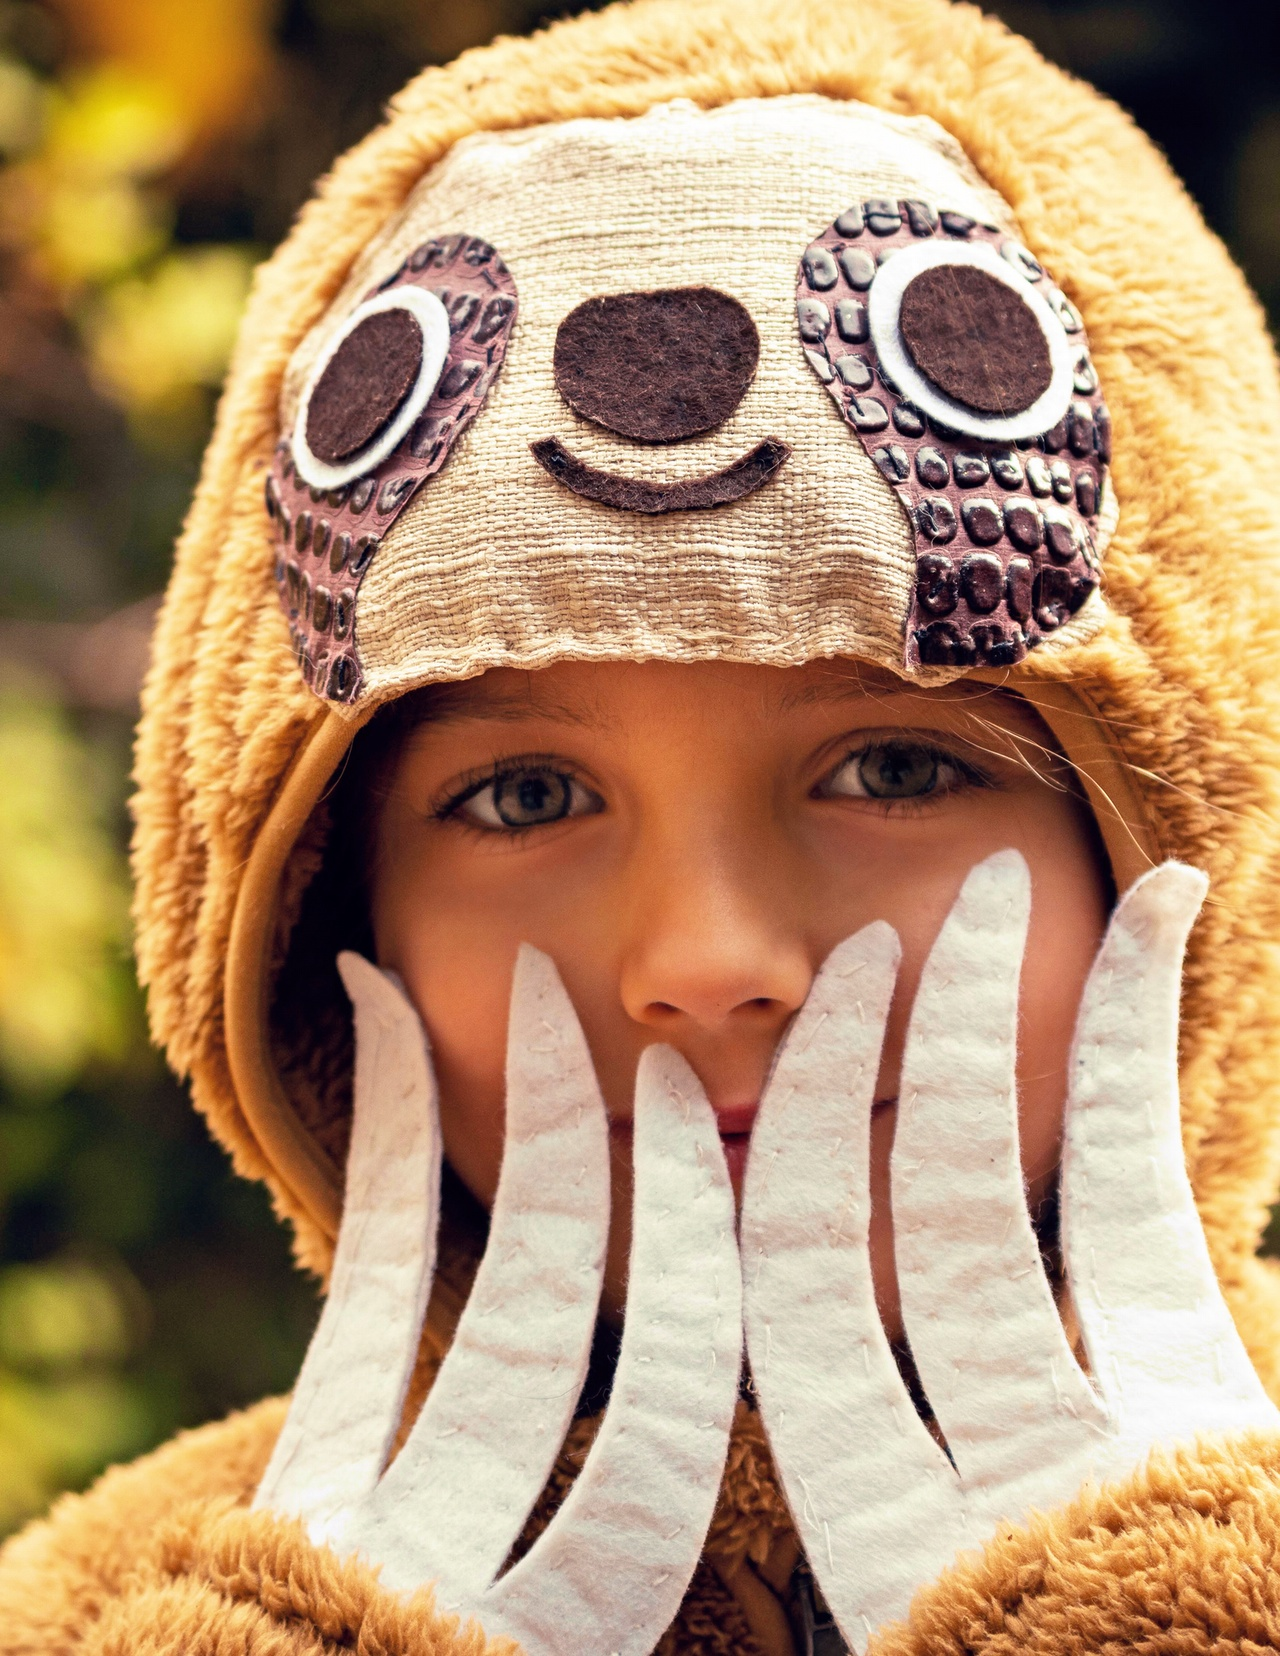 Make a sloth craft hoodie! Easy steps and instructions in the book!